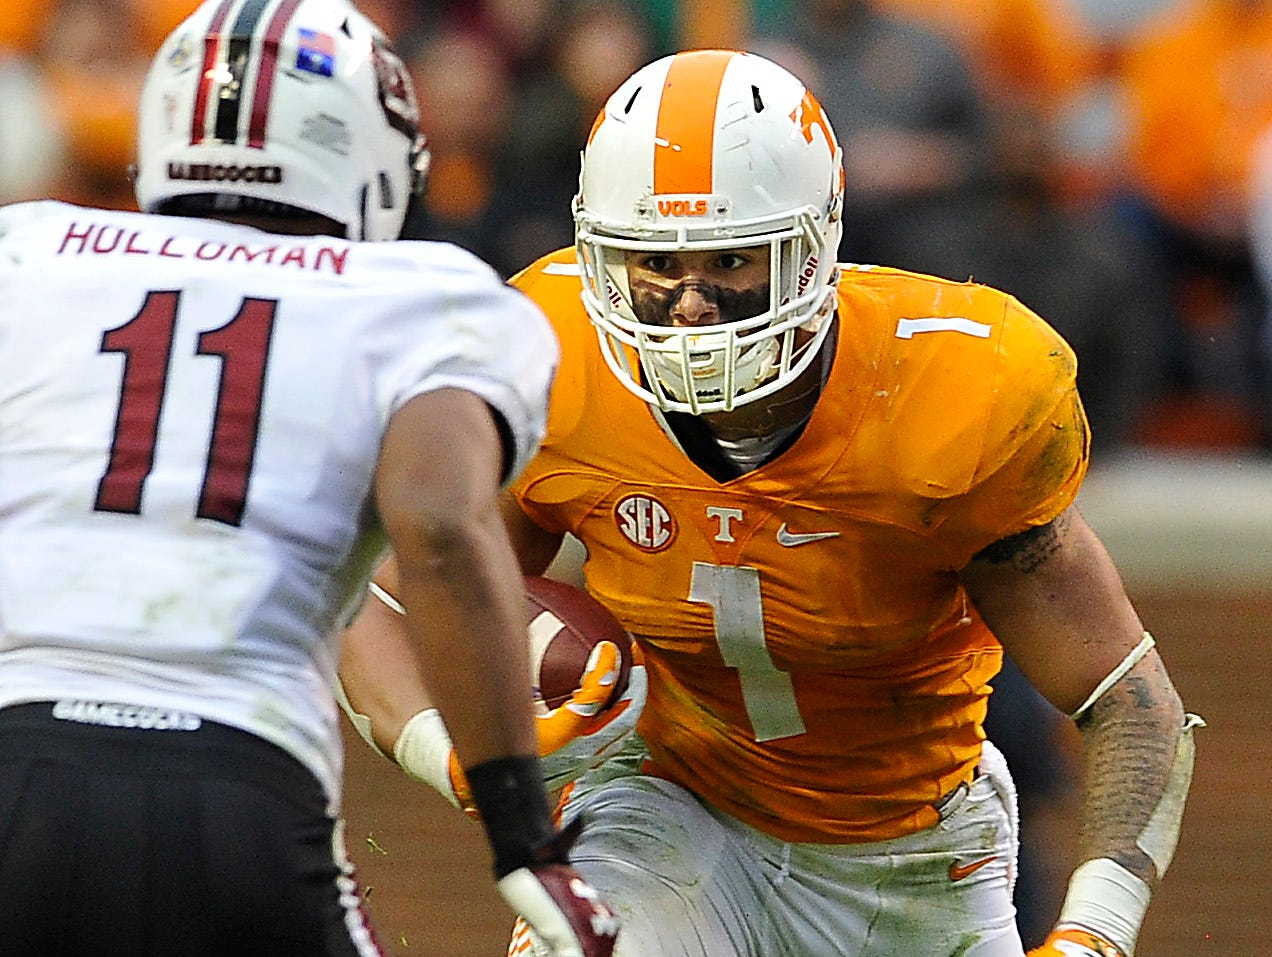 Tennessee running back Jalen Hurd (1) changes direction as he meets South Carolina Gamecocks linebacker T.J. Holloman (11) in Knoxville on Nov. 7.